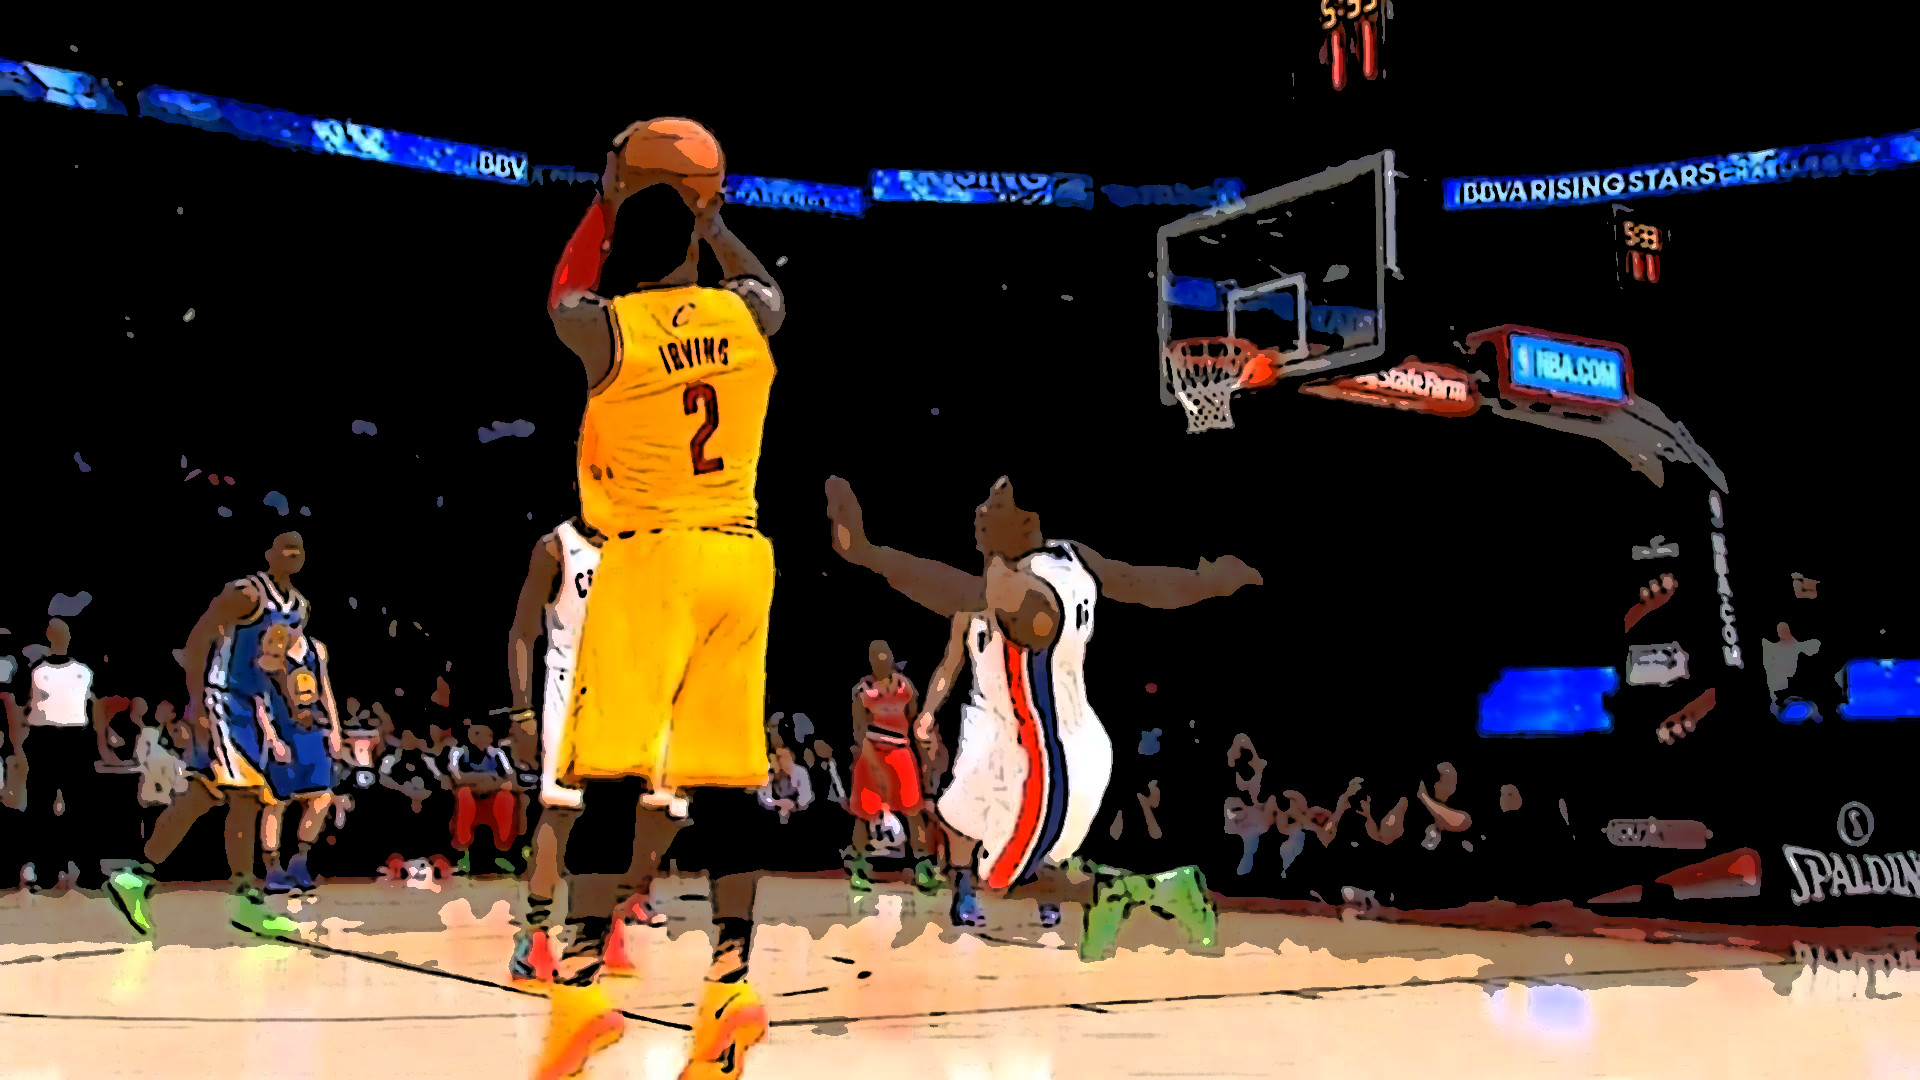 Jamal Crawford Wallpaper Hd Kyrie Irving S Ankle Breaking Moves On Brandon Knight